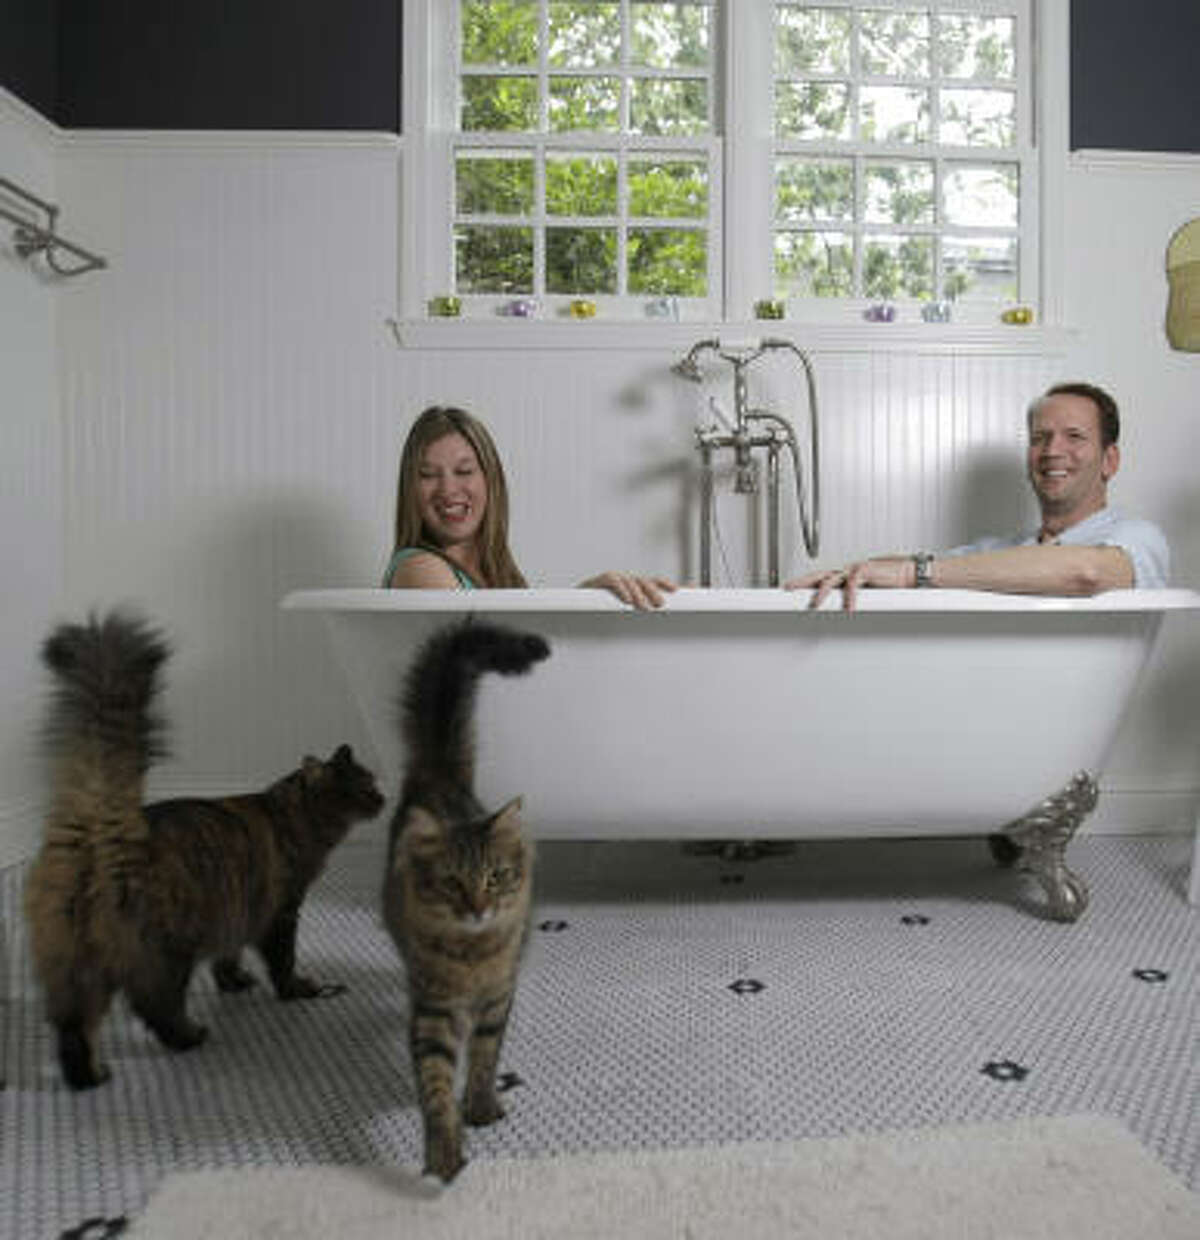 Dwayne and Sarah Van Wieren try out their new tub as their cats, Ron and Nancy, check out the tile. The professional couple got a no-money-down loan in West U.